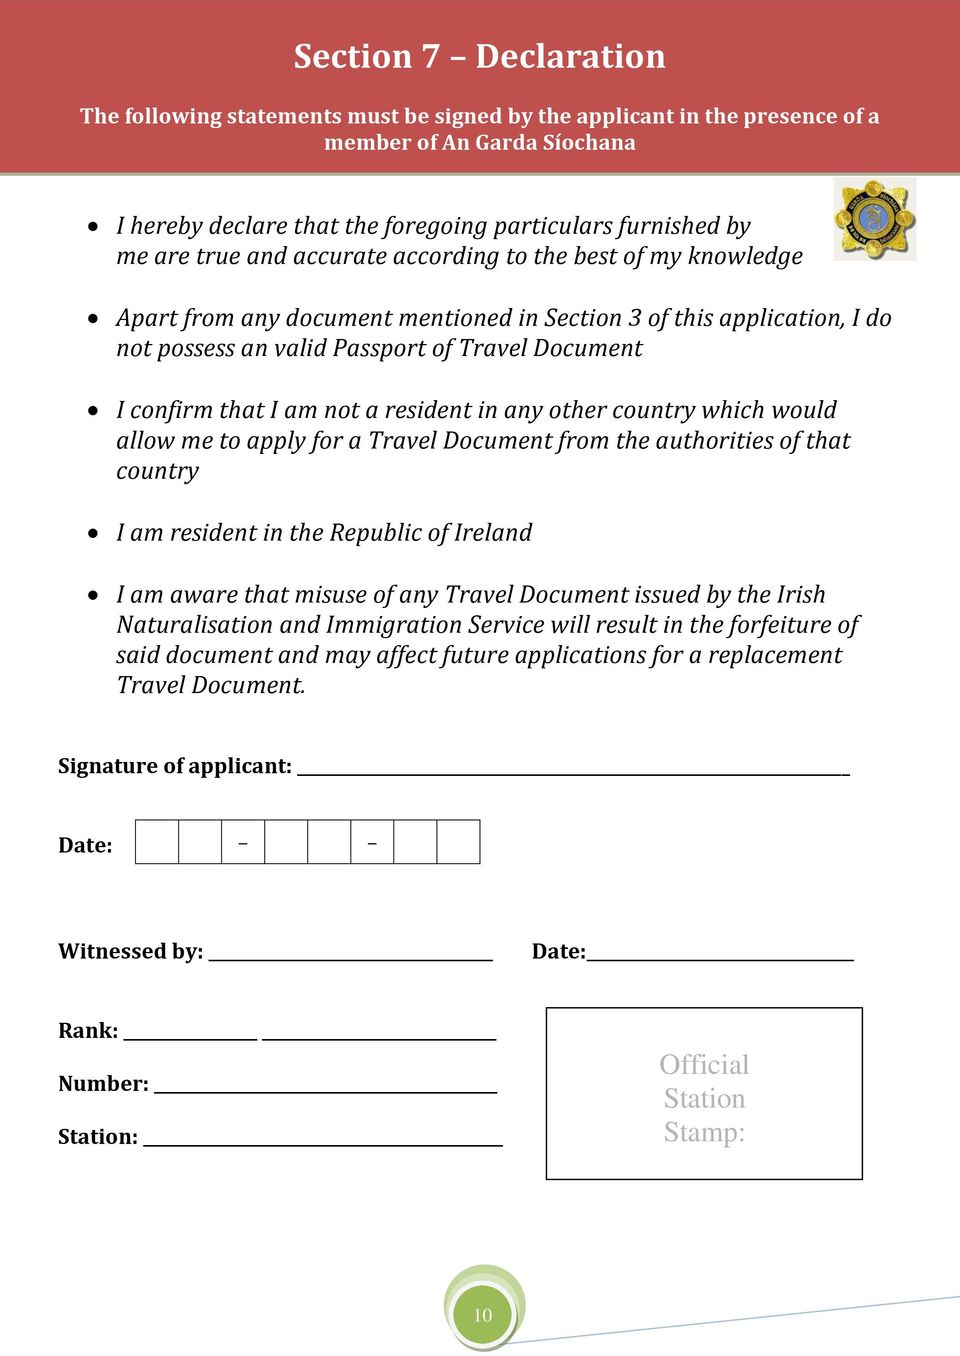 not a resident in any other country which would allow me to apply for a Travel Document from the authorities of that country I am resident in the Republic of Ireland I am aware that misuse of any